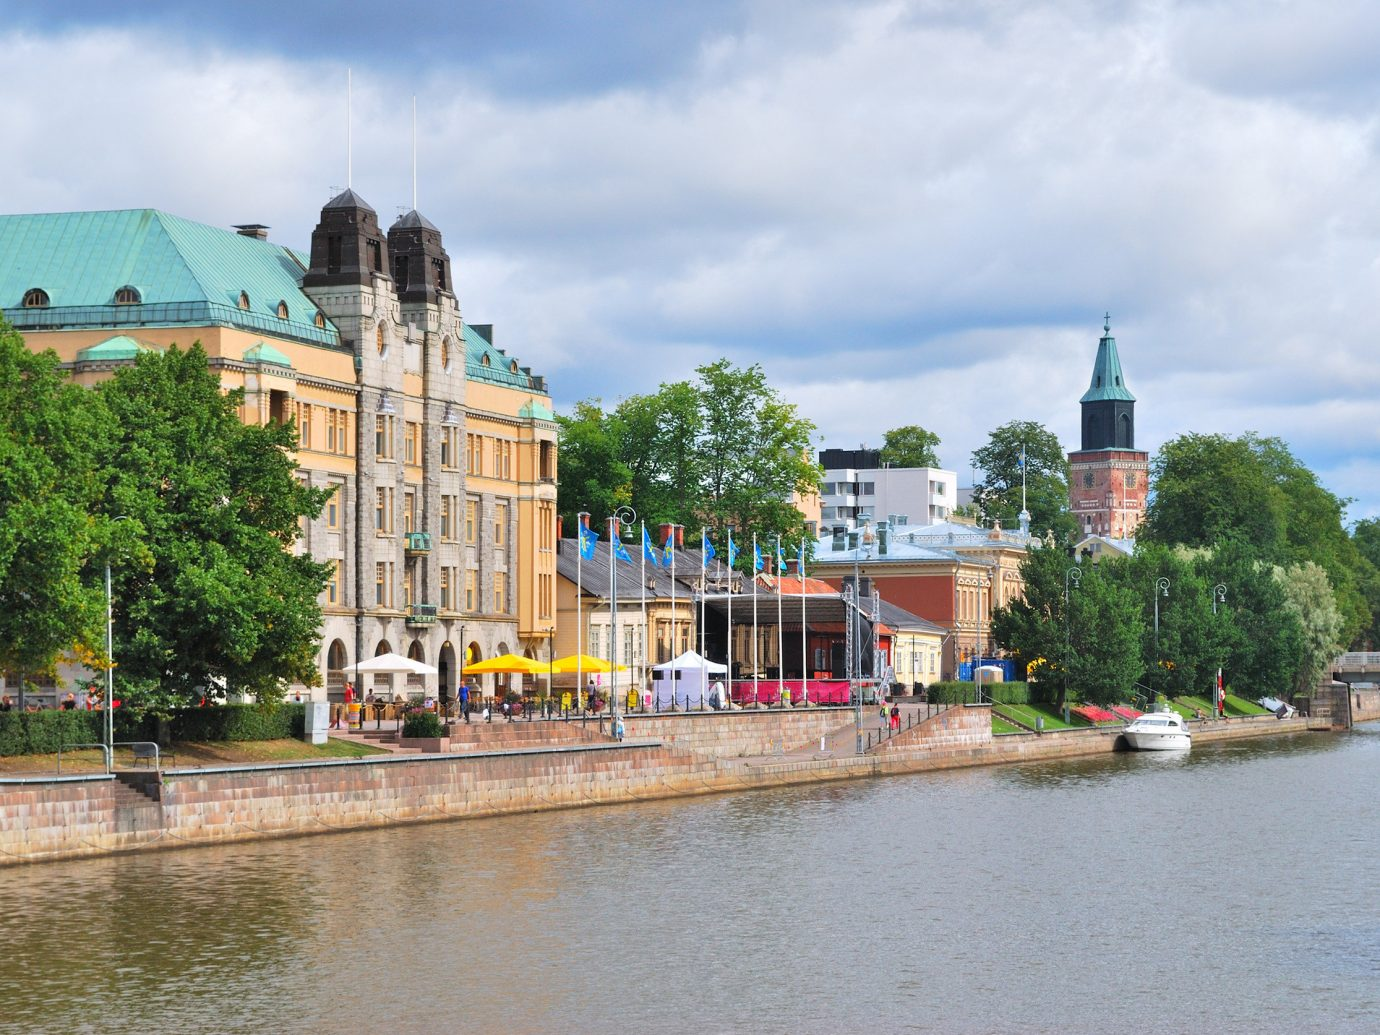 Finland Trip Ideas sky outdoor water waterway body of water Canal Town City River reflection bank tree Nature channel real estate water transportation watercourse Harbor Boat house